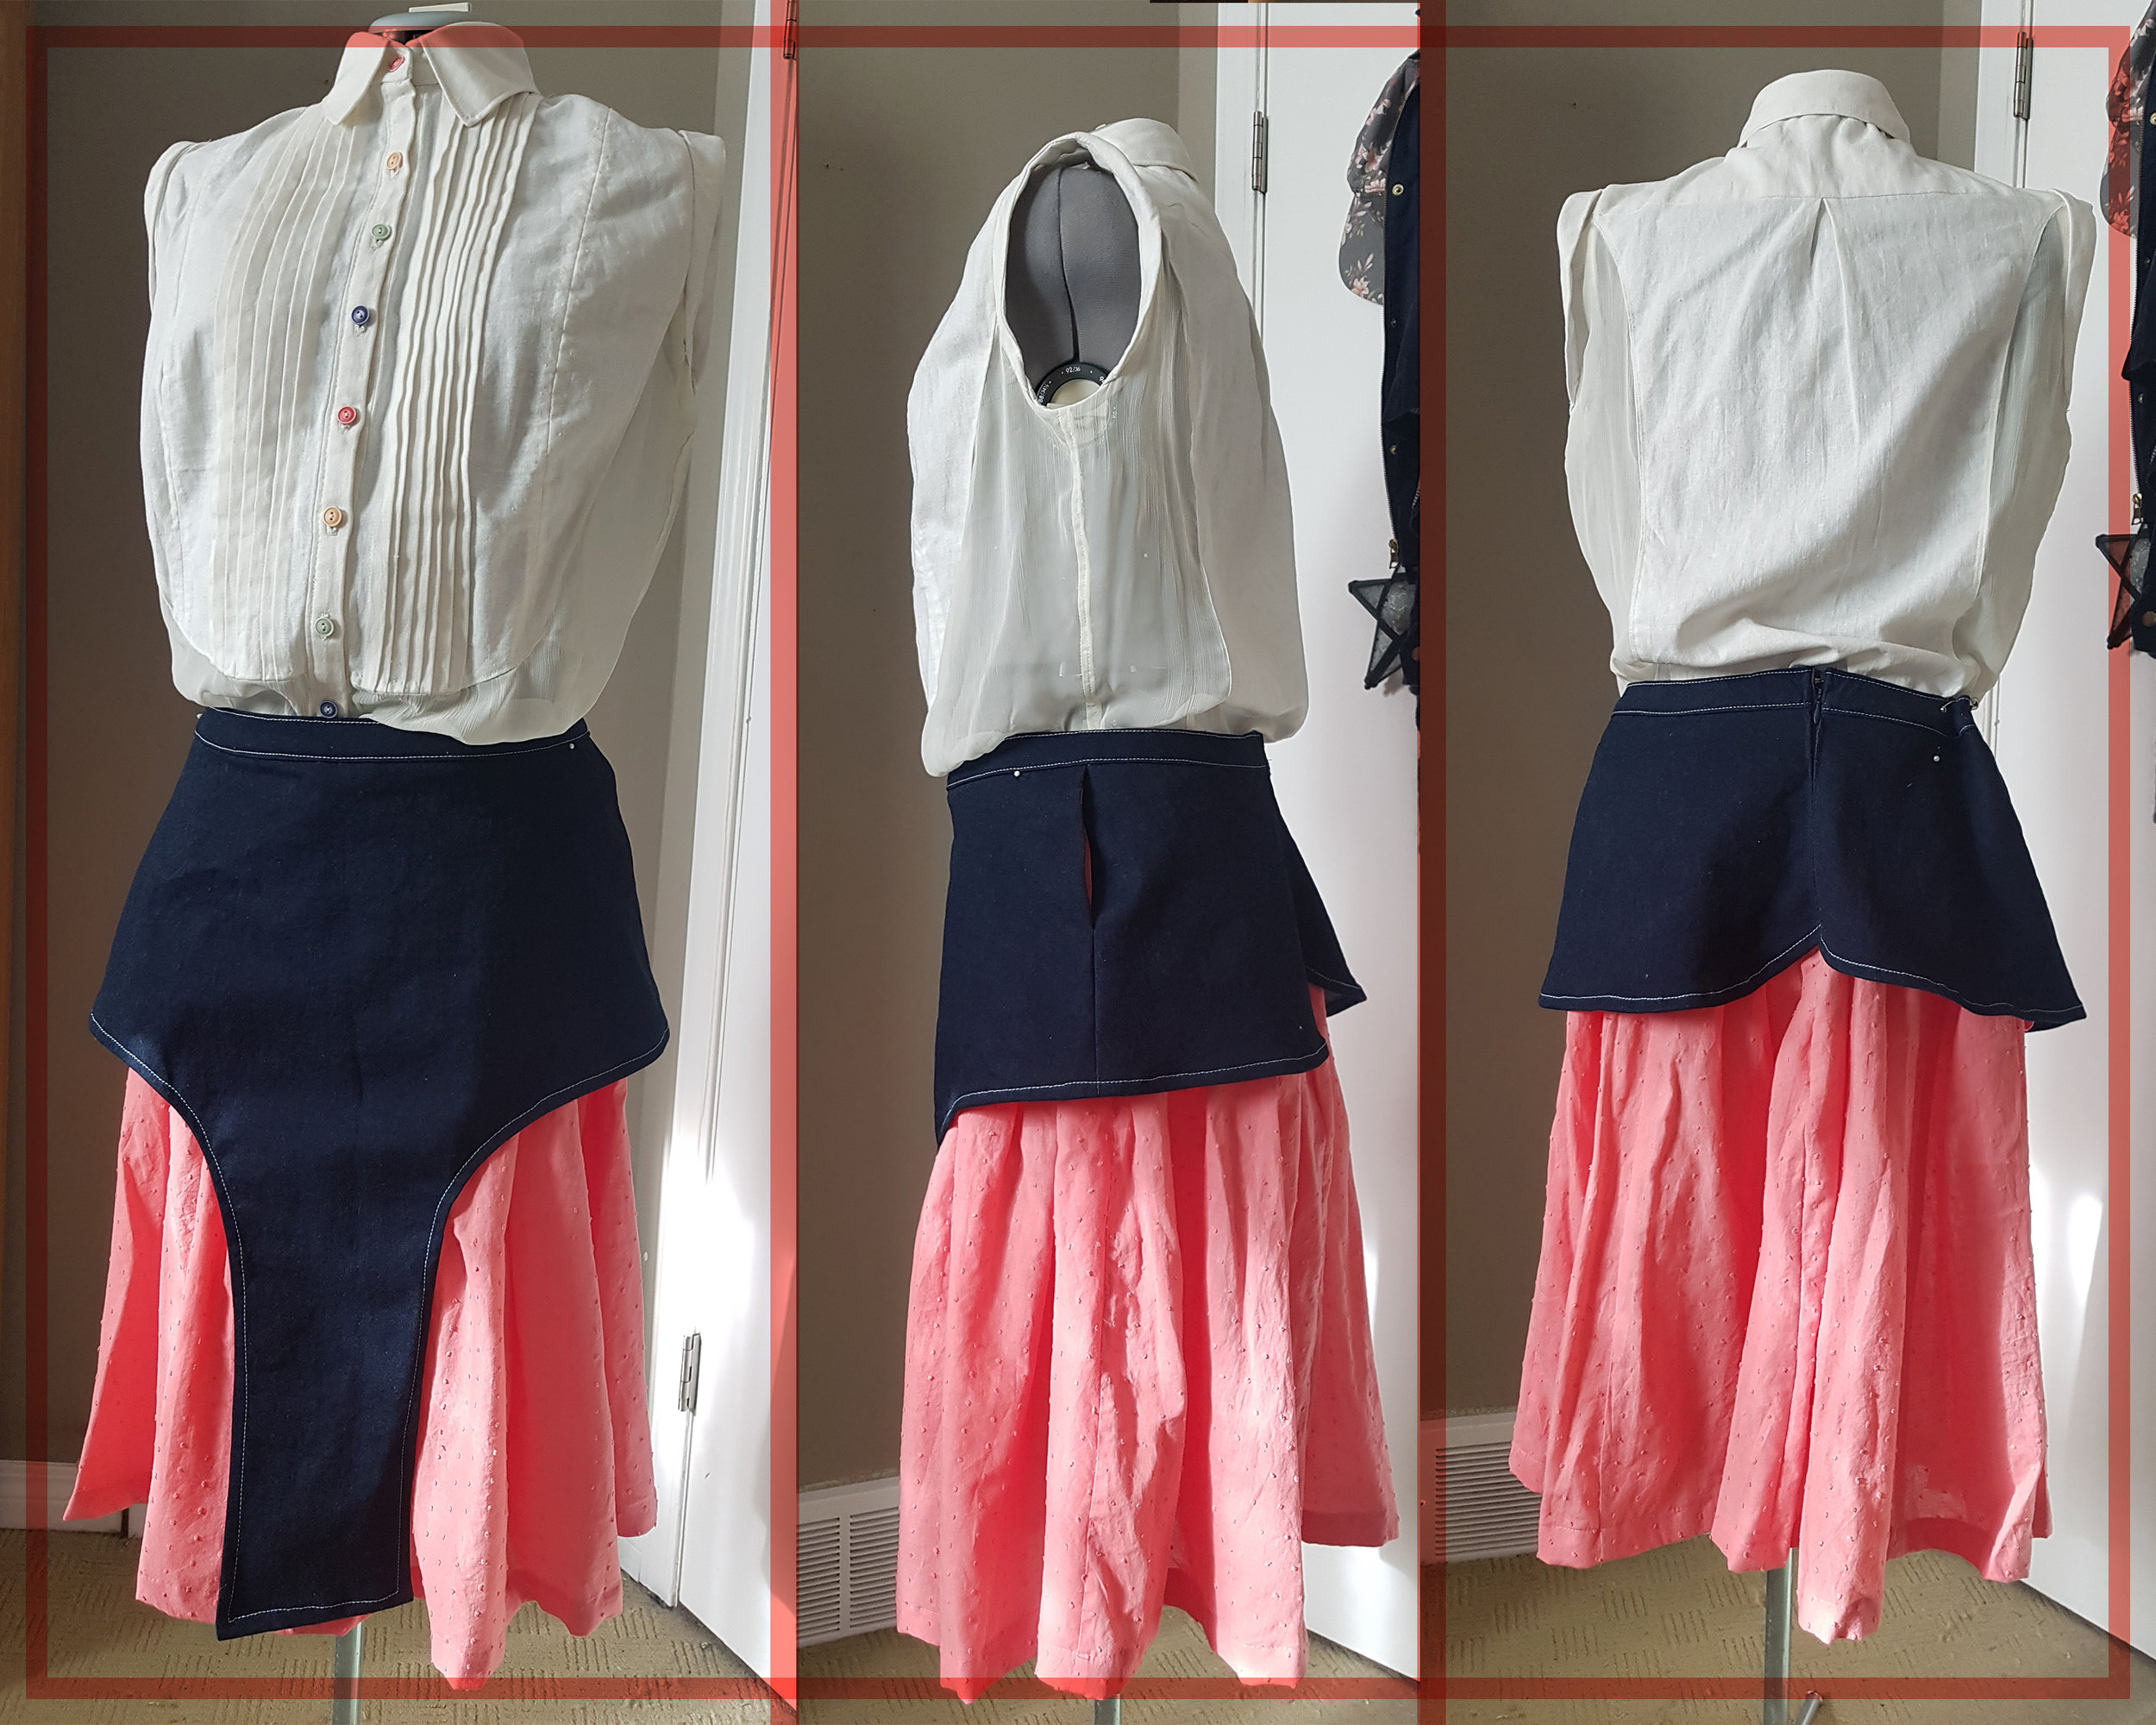 Caption: Three photos of the Amelia Ensemble, presented as a turnaround: front, side, and back view. The Amelia Ensemble includes a sleeveless ivory blouse with front pintucks, sheer side panels, shoulder caps, and different coloured pastel buttons for the placket; it also includes a gathered pink swiss dot skirt with a denim peplum overskirt that's the same length as the pink skirt at the front, but quickly shortens to the hip at the side seam and meets as petals in the centre back.